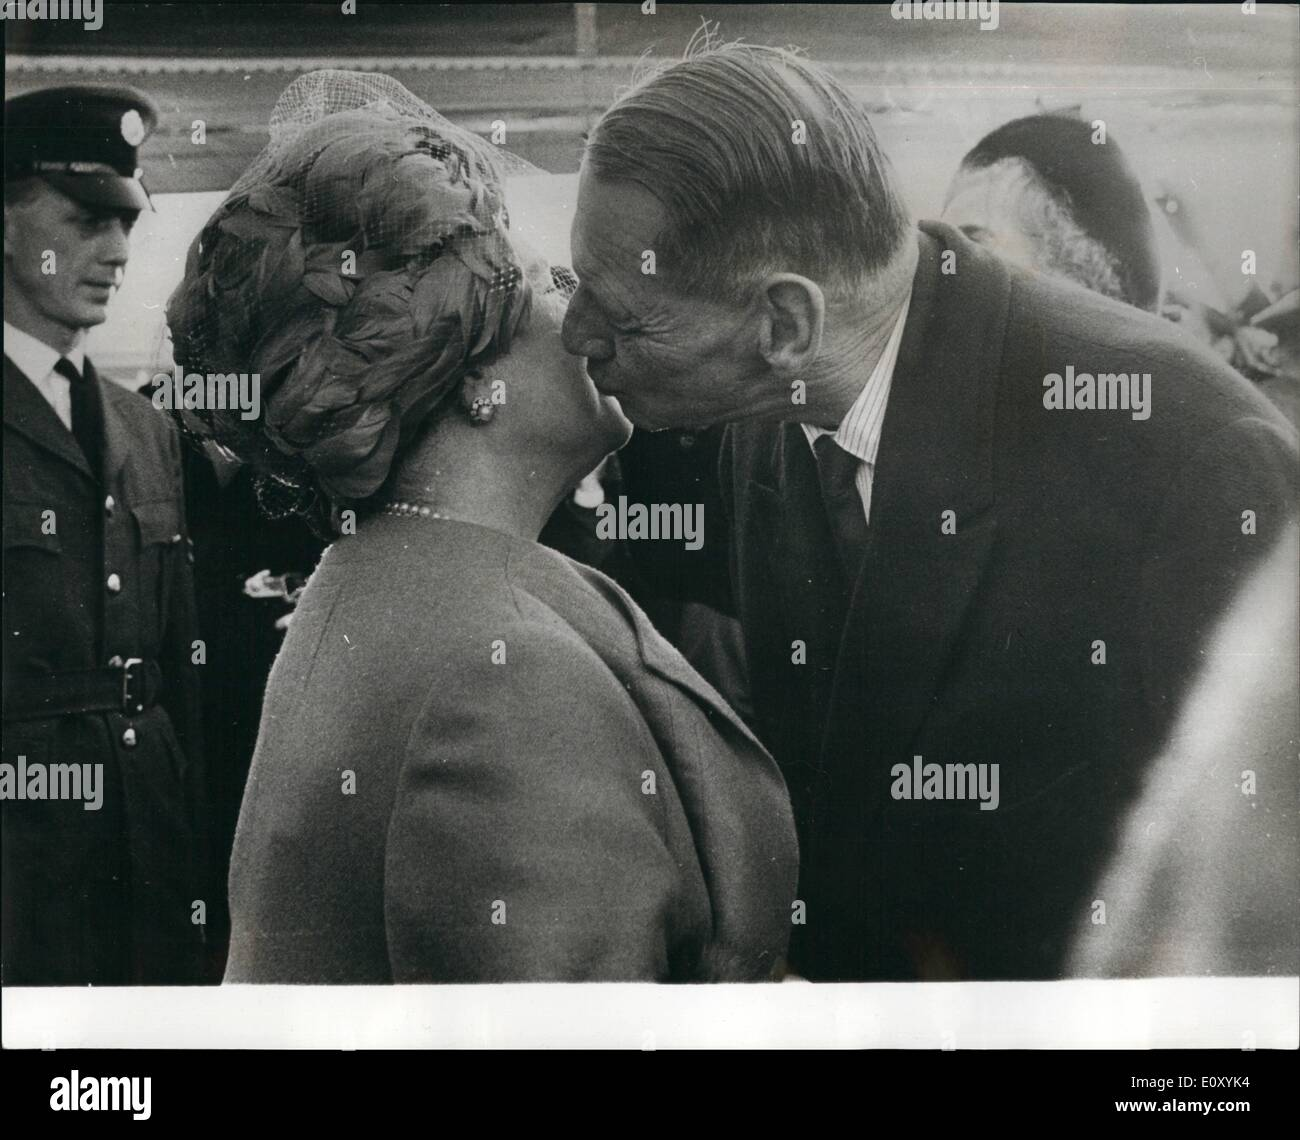 Feb. 02, 1968 - Queen Elizabeth the Queen mother arrives in Copenhagen to attend wedding of Princess Benedikte.: Queen Elizabeth the Queen Mother arrived in Copenhagen yesterday, to attend the wedding of Princess Benedikte and Prince Richard Zu Sayn-Wittgenstein-Berleburg, which takes place in Copenhagen tomorrow (Saturday). King Frederik and Queen Ingrid of Denmark were at the airport to greet her. Photo shows Queen Elizabeth the Queen mother seen being greeted by King Frederik of Denmark, on her arrival in Copenhagen yesterday. - Stock Image